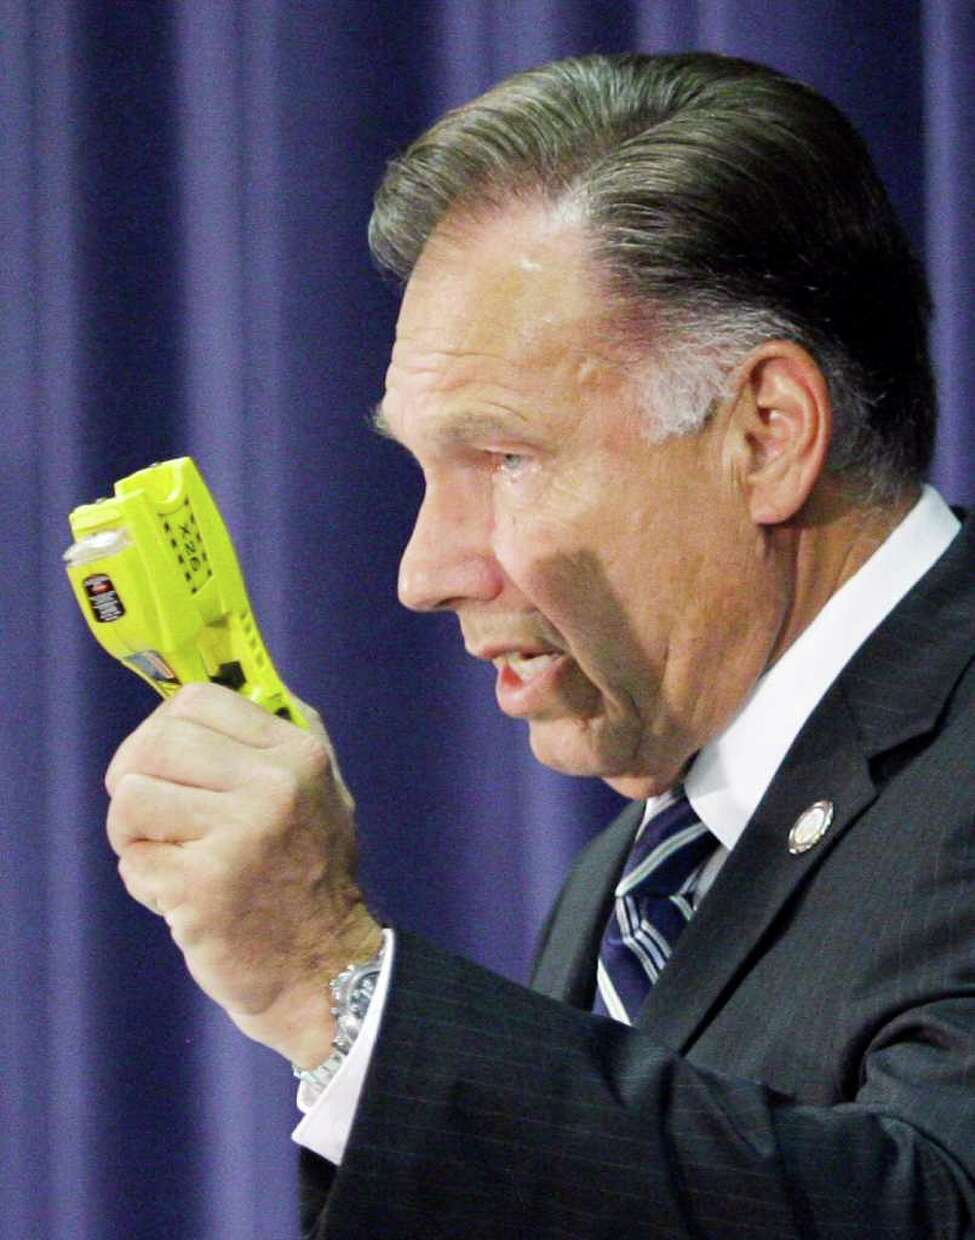 Orange County, Calif., District Attorney Tony Rackauckas shows a Taser of the type used as he announces that two police officers will be charged in the death of Kelly Thomas, a mentally ill homeless man, at a news conference in Santa Ana, Calif., Wednesday, Sept. 21, 2011. Fullerton, Calif., police officer Manuel Ramos was charged with one count each of second degree murder and involuntary manslaughter in the death of Thomas after a violent confrontation with police officers on July 5. Police Cpl. Jay Cicinelli was charged with one count each of involuntary manslaughter and excessive force. (AP Photo/Reed Saxon)